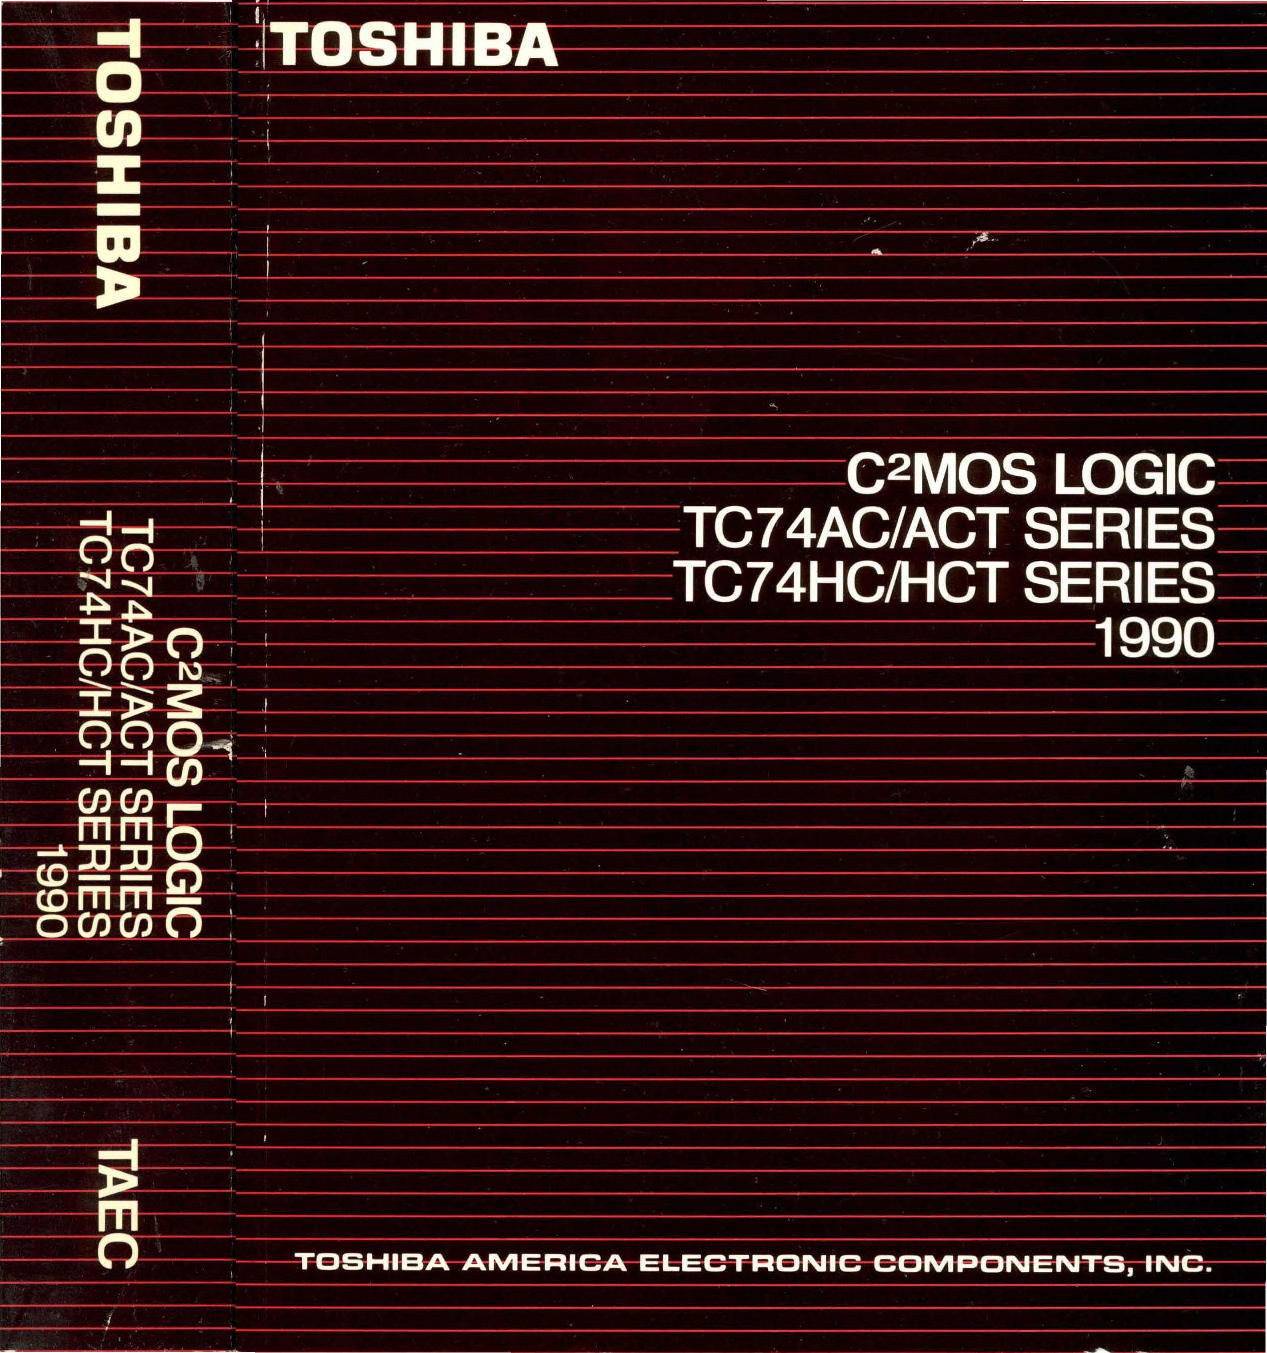 1990 Toshiba C2mos Logic 74hc147 Circuits Wiring Diagram